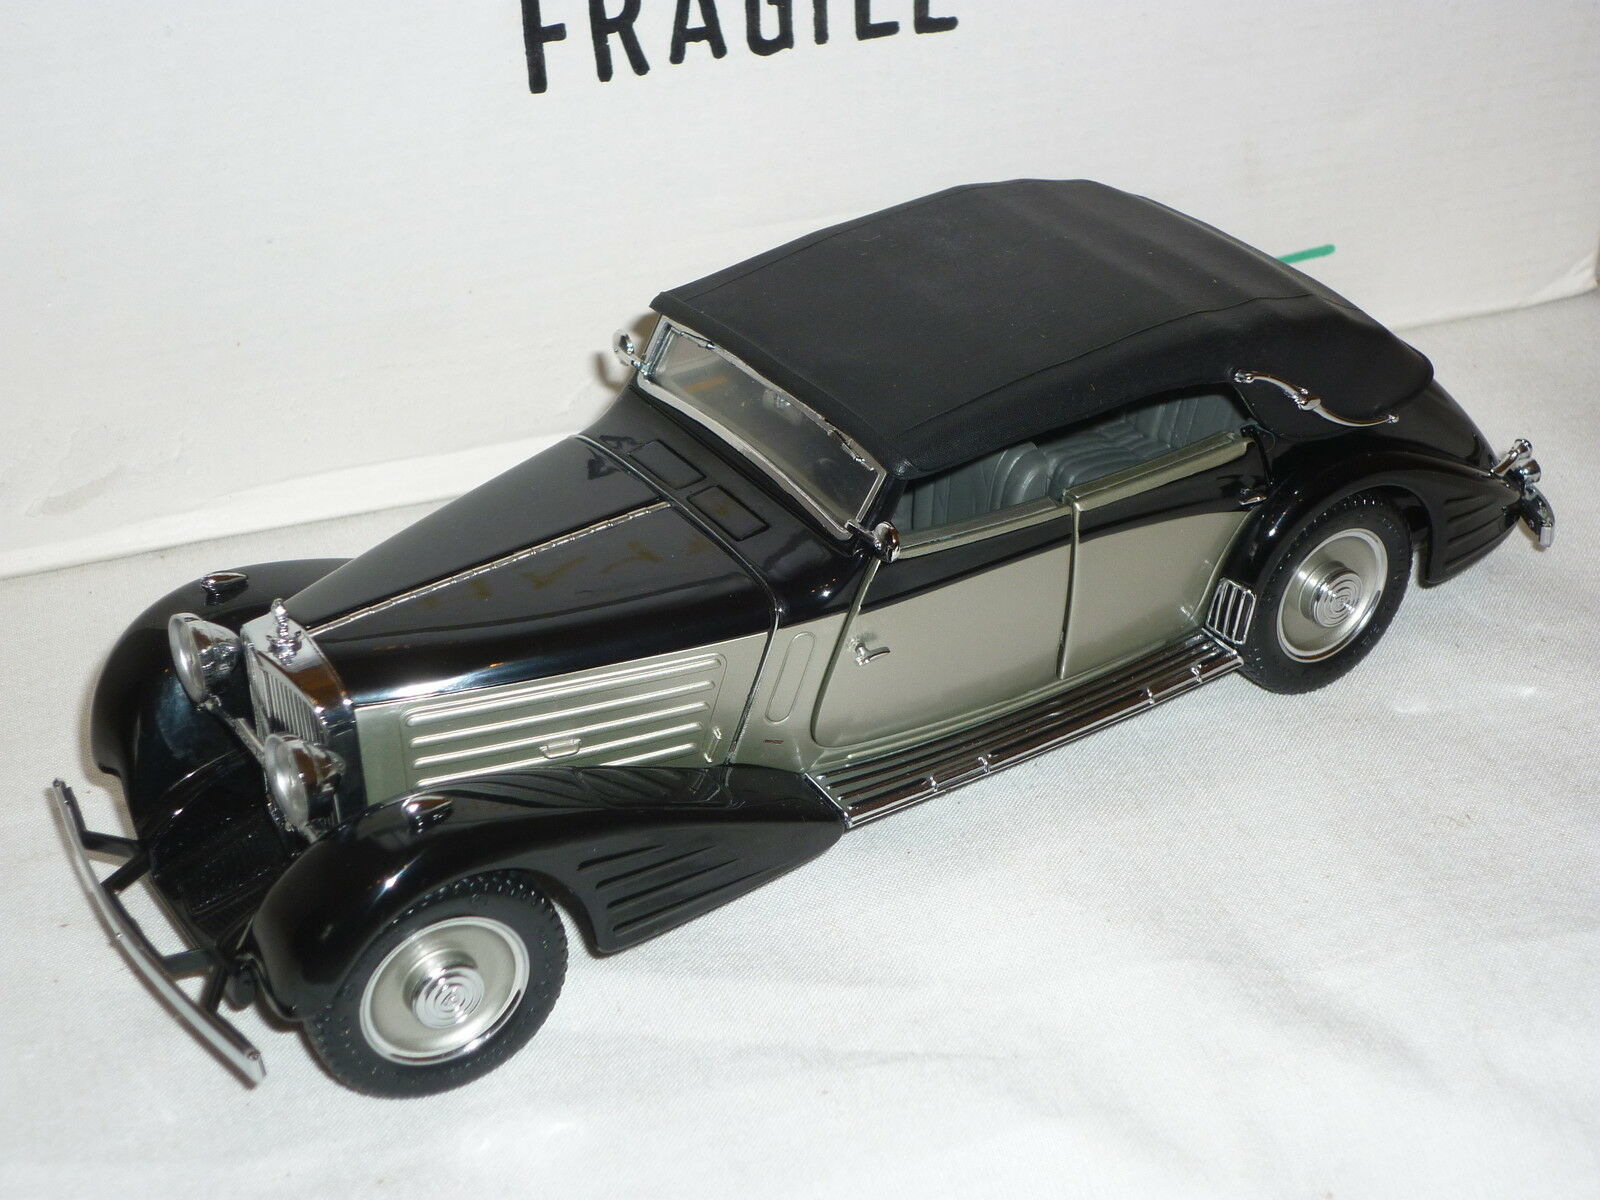 Un modelo de escala Franklin Mint de un 1939 Maybach Zeppelin, En Caja